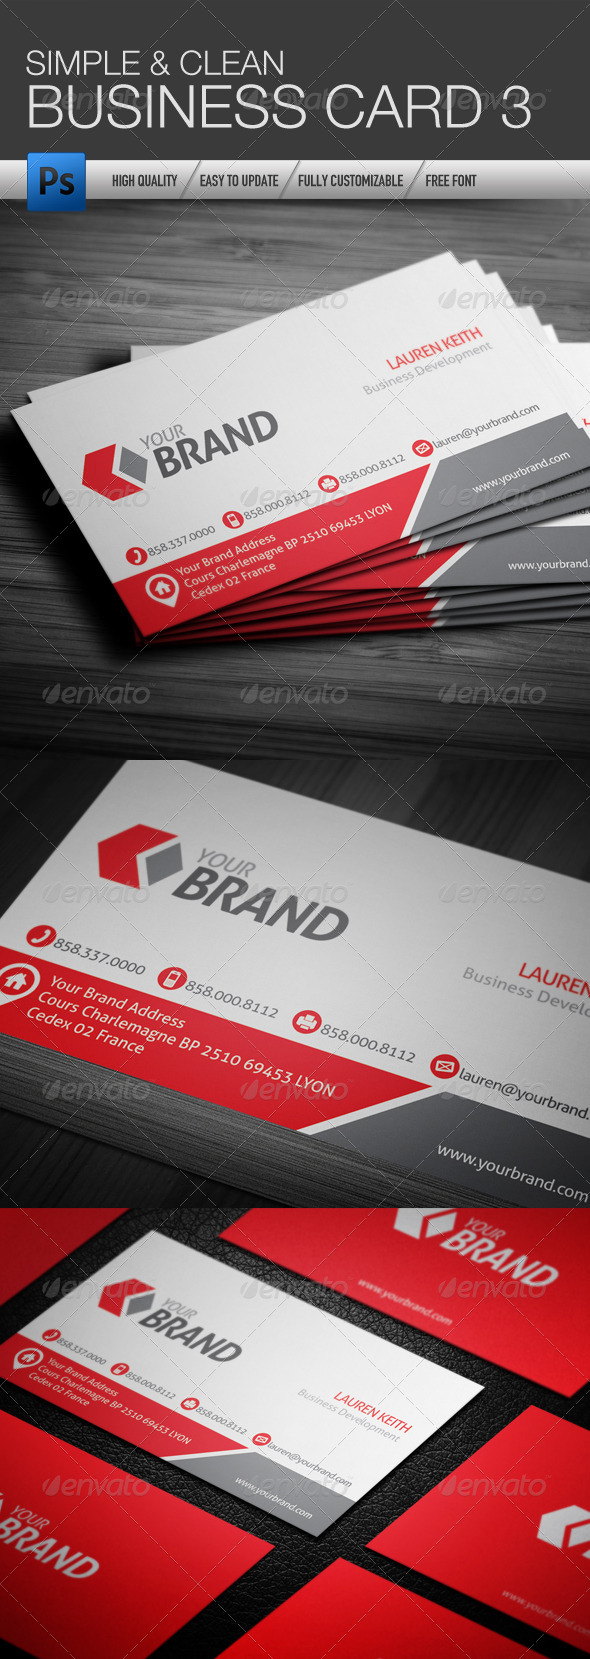 GraphicRiver Simple and Clean Business Card 3 4505825